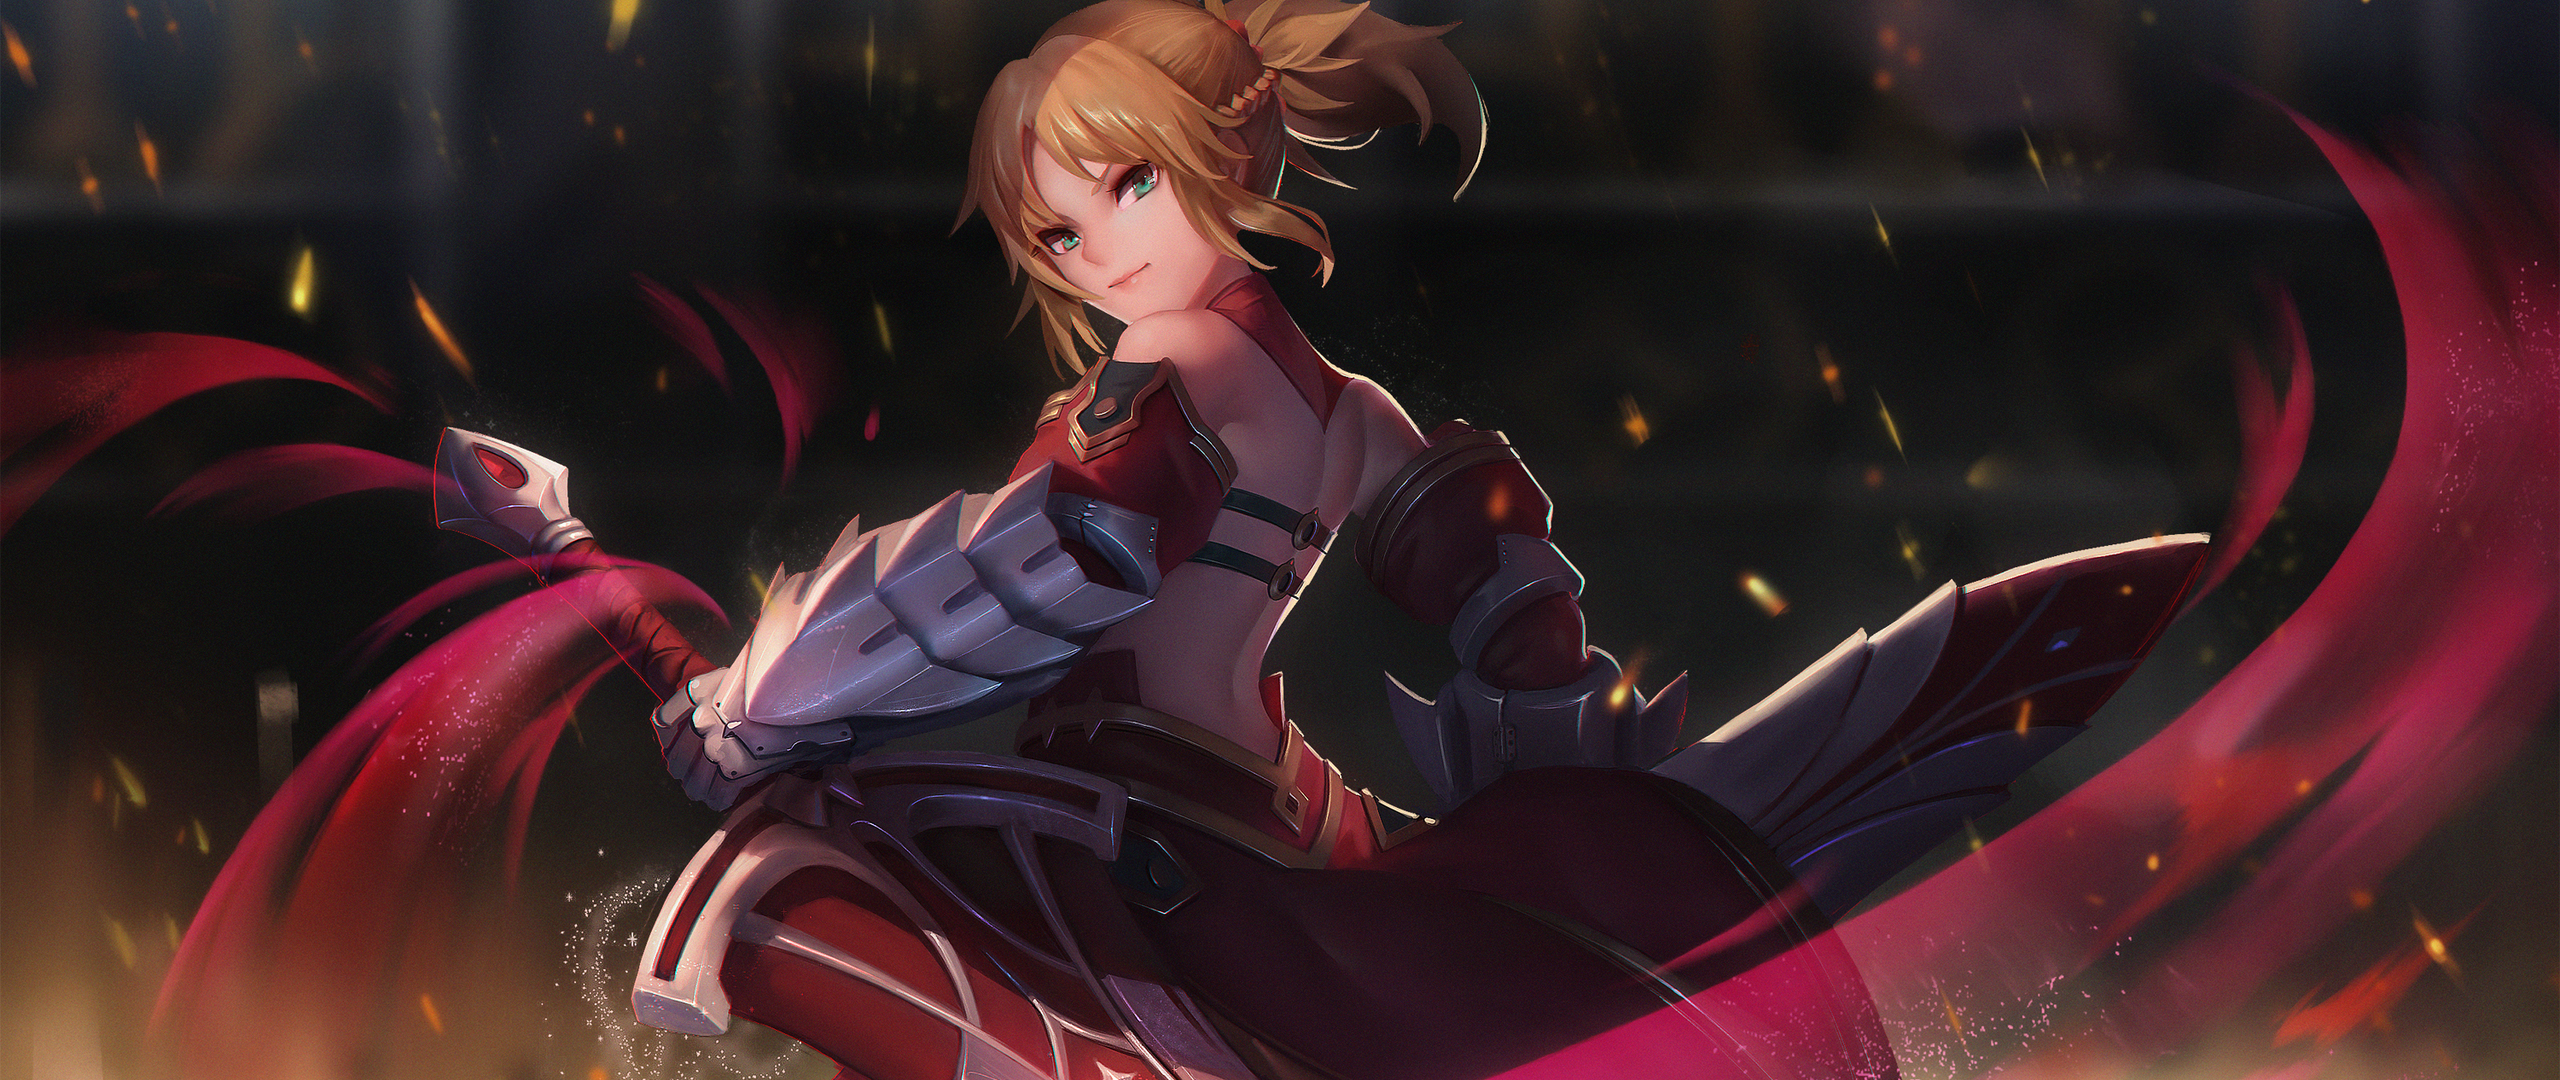 2560x1080 Saber Of Red Fate Grand Order 2560x1080 Resolution Hd 4k